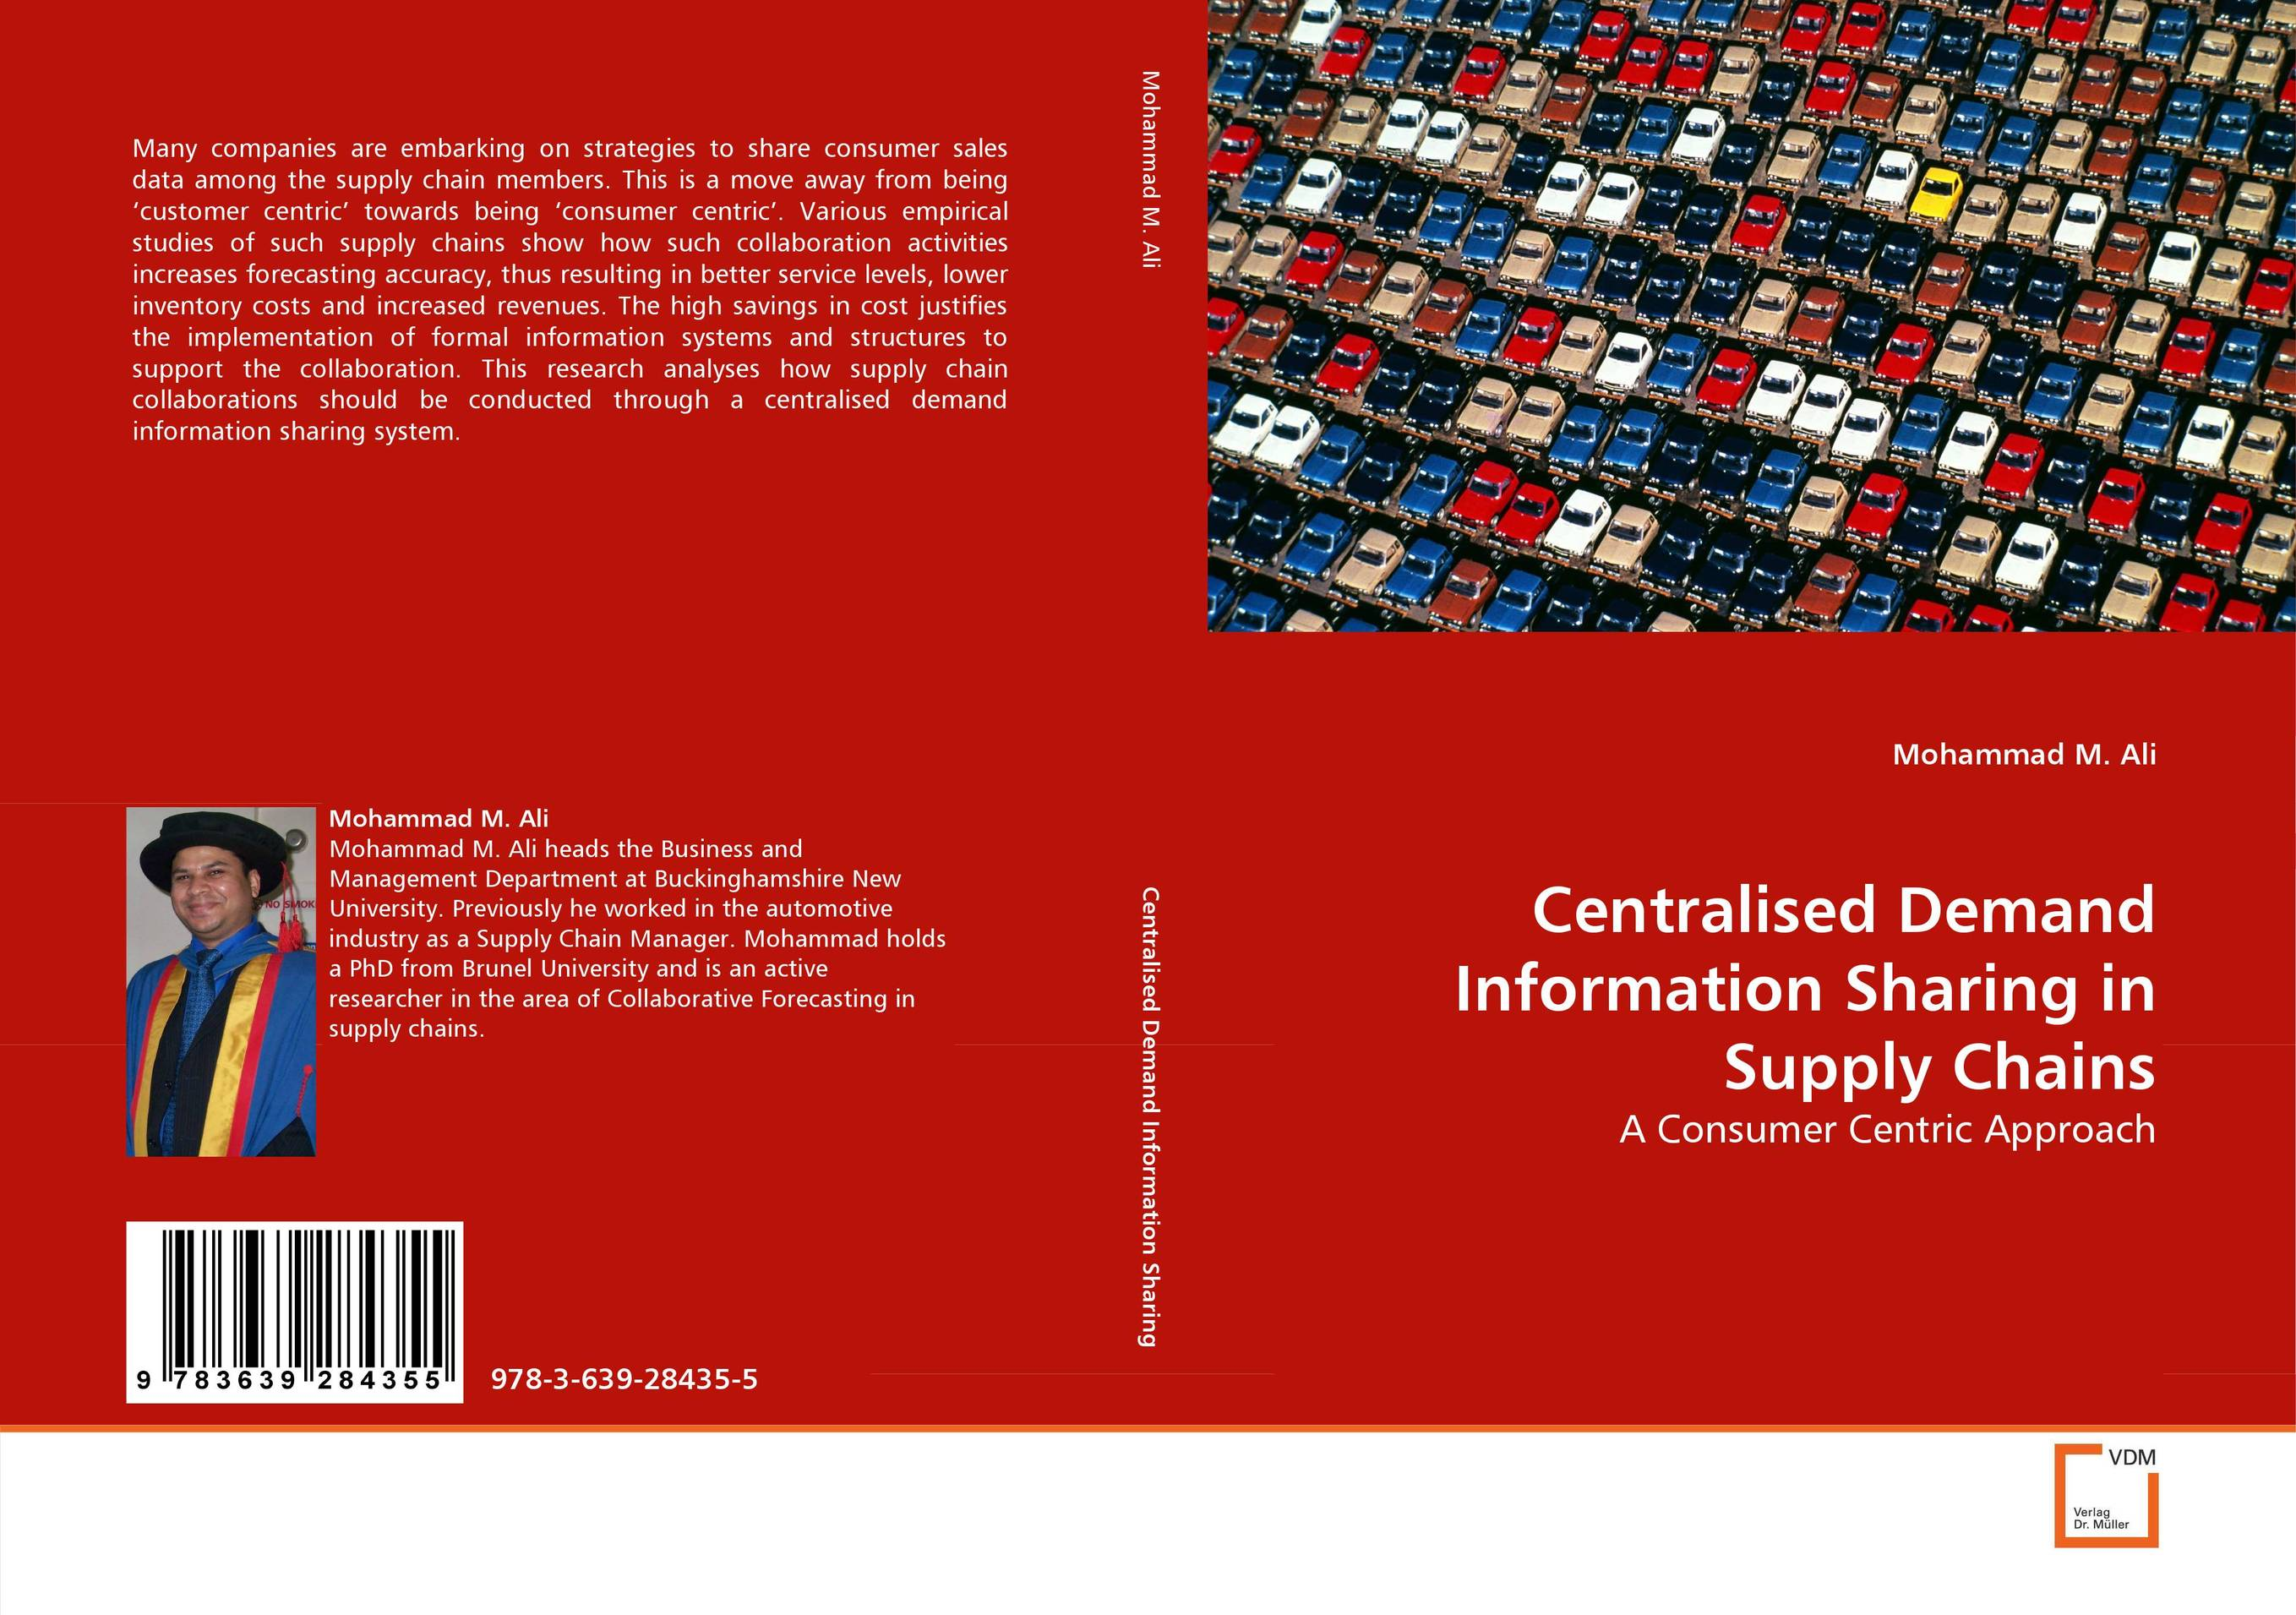 Centralised Demand Information Sharing in Supply Chains robert davis a demand driven inventory optimization and replenishment creating a more efficient supply chain